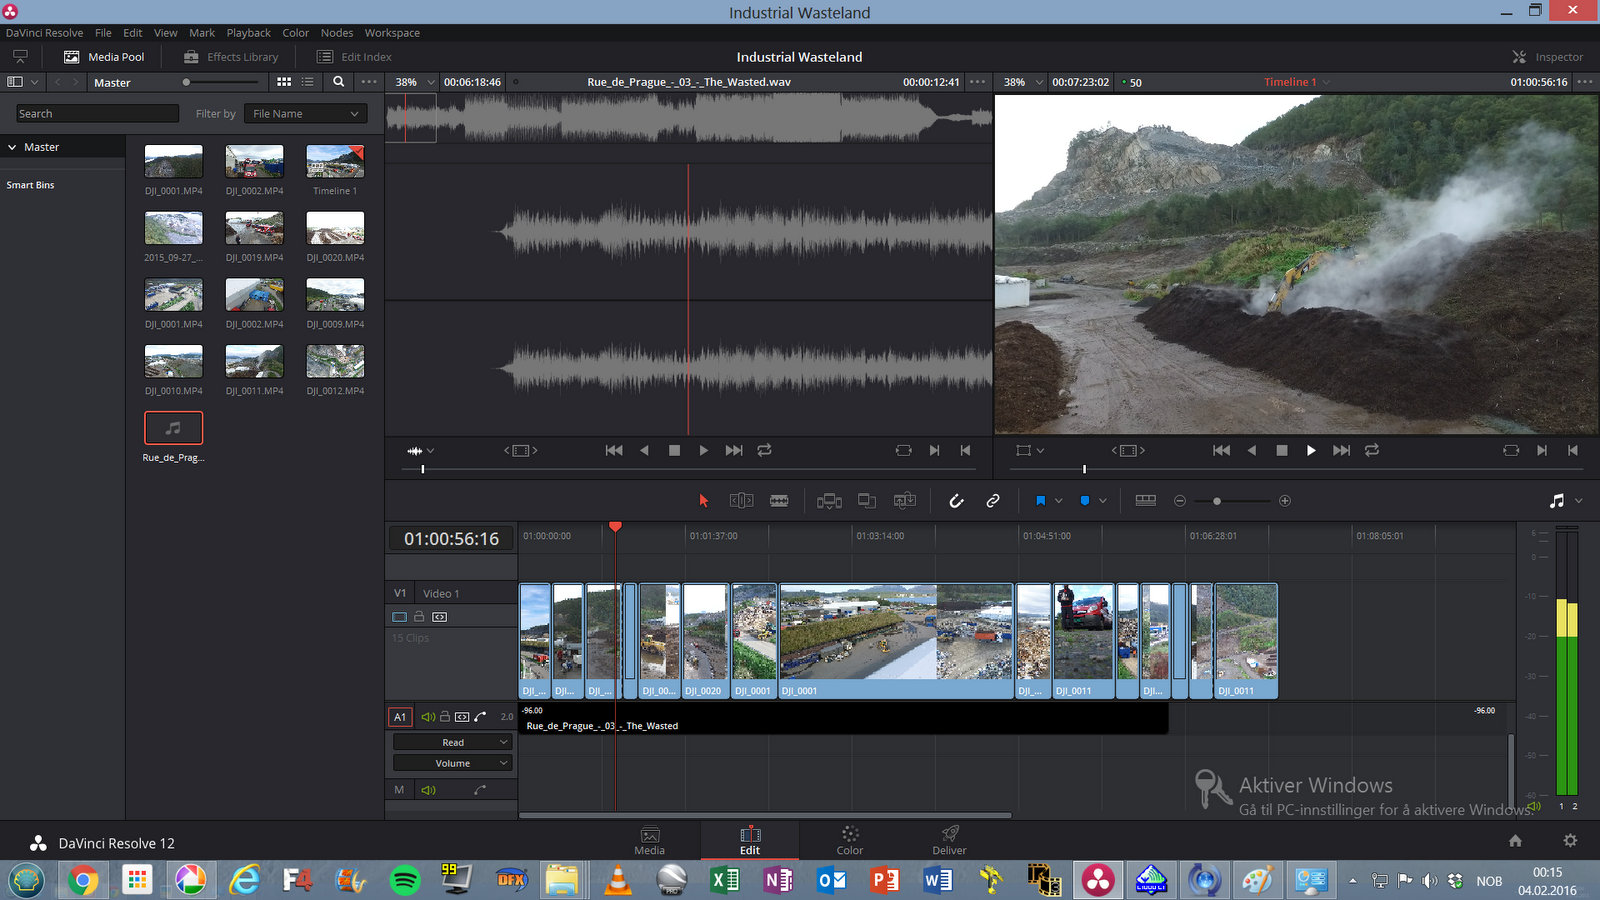 DaVinchi_Resolve_Import_Audio_See_No_Hear_03.02.2016.jpg